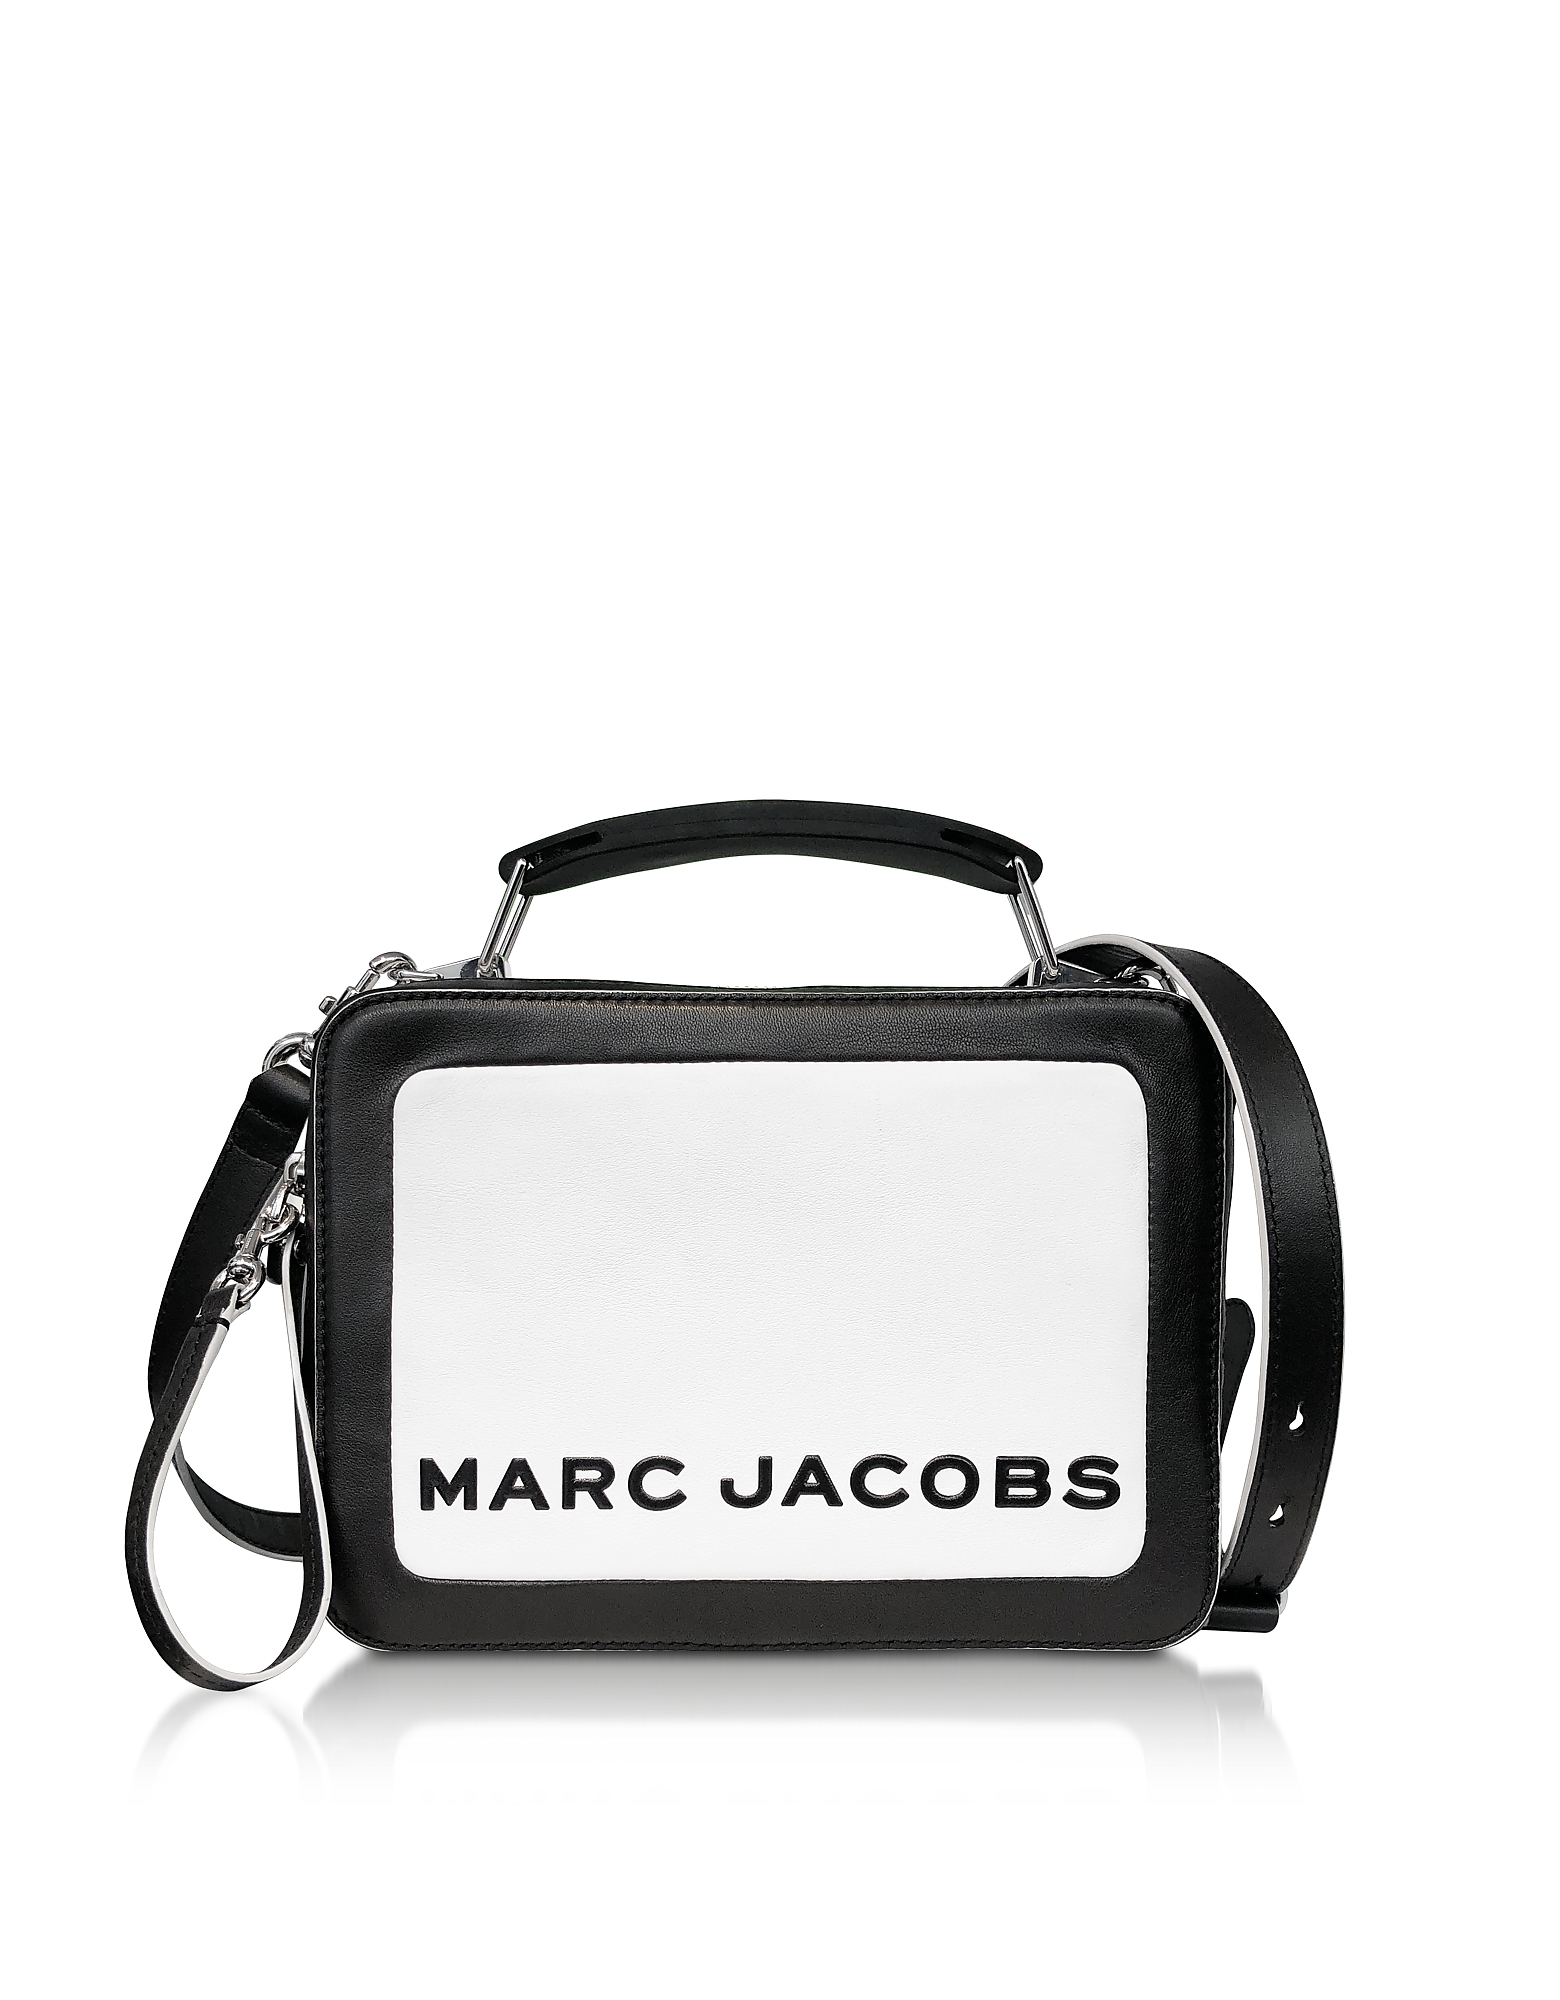 Marc Jacobs Handbags, The Mini Box Bag